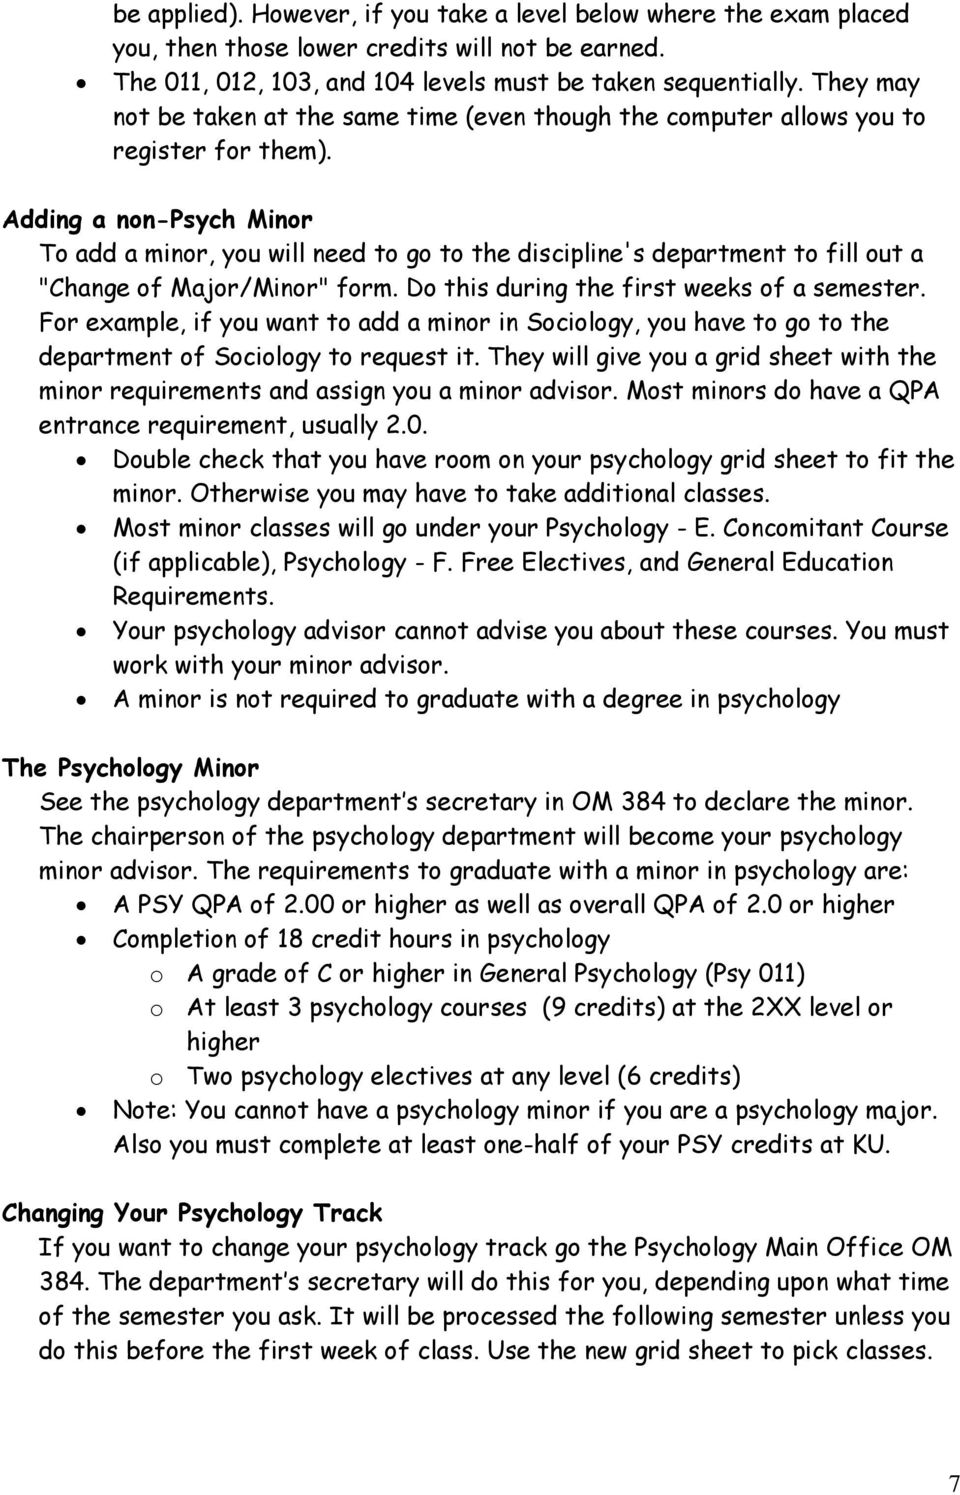 "Adding a non-psych Minor To add a minor, you will need to go to the discipline's department to fill out a ""Change of Major/Minor"" form. Do this during the first weeks of a semester."